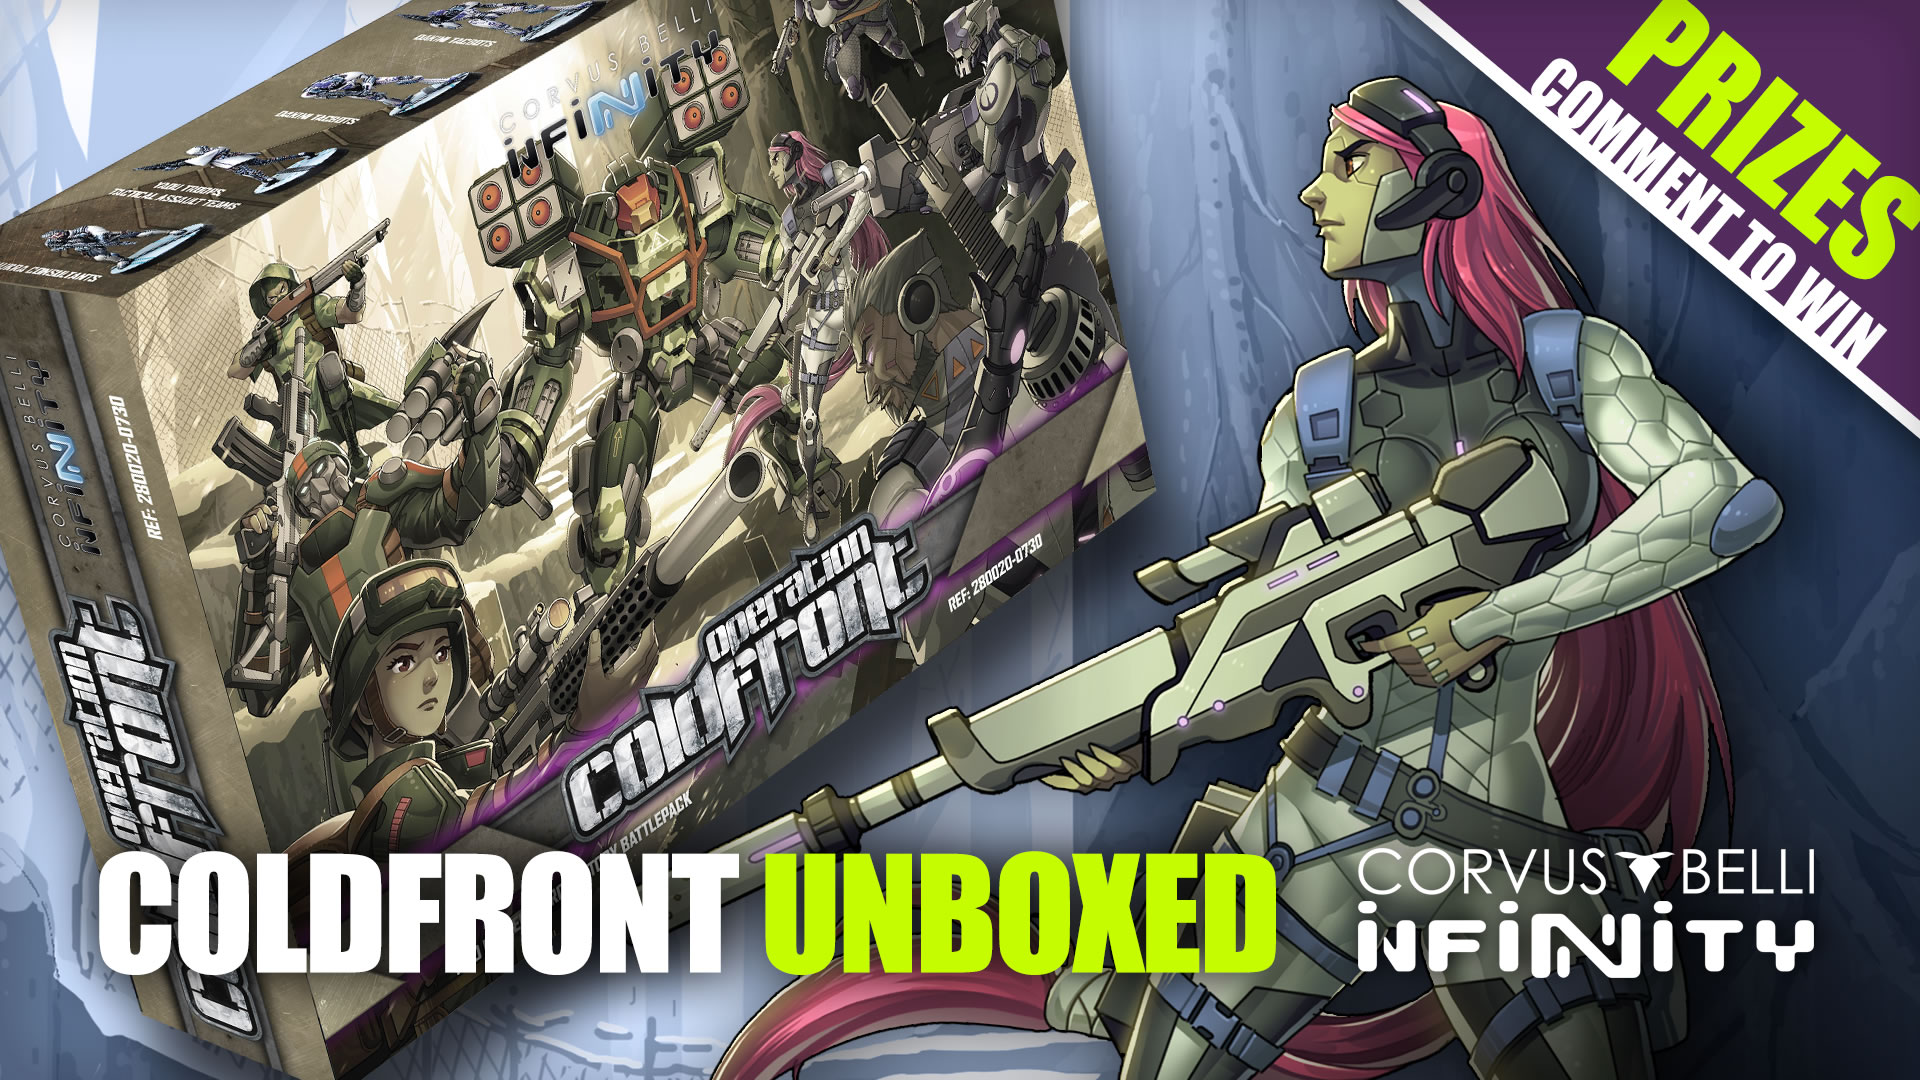 Unboxing Operation Coldfront Battle Pack